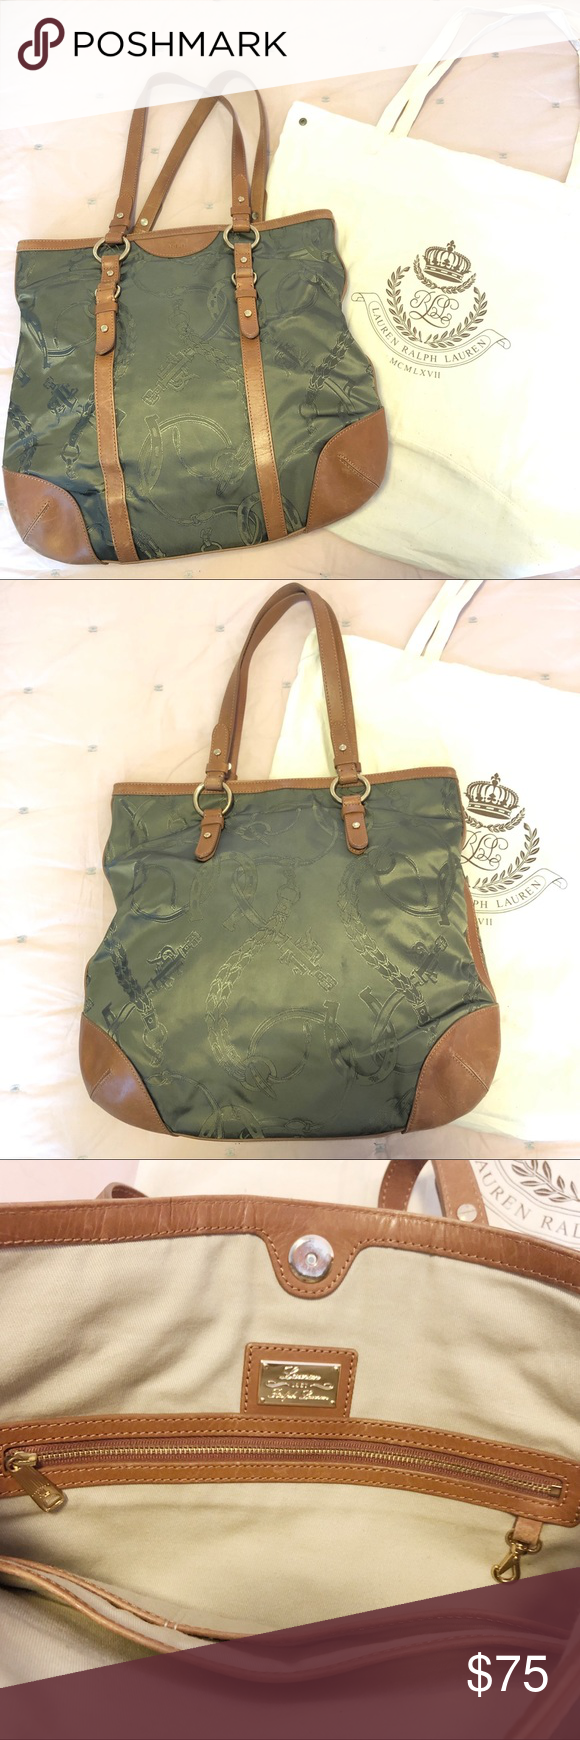 19c0b8489a61 Lauren Ralph Lauren Equestrian Tote Beautiful tote bag with olive equestrian  print and tan leather trim